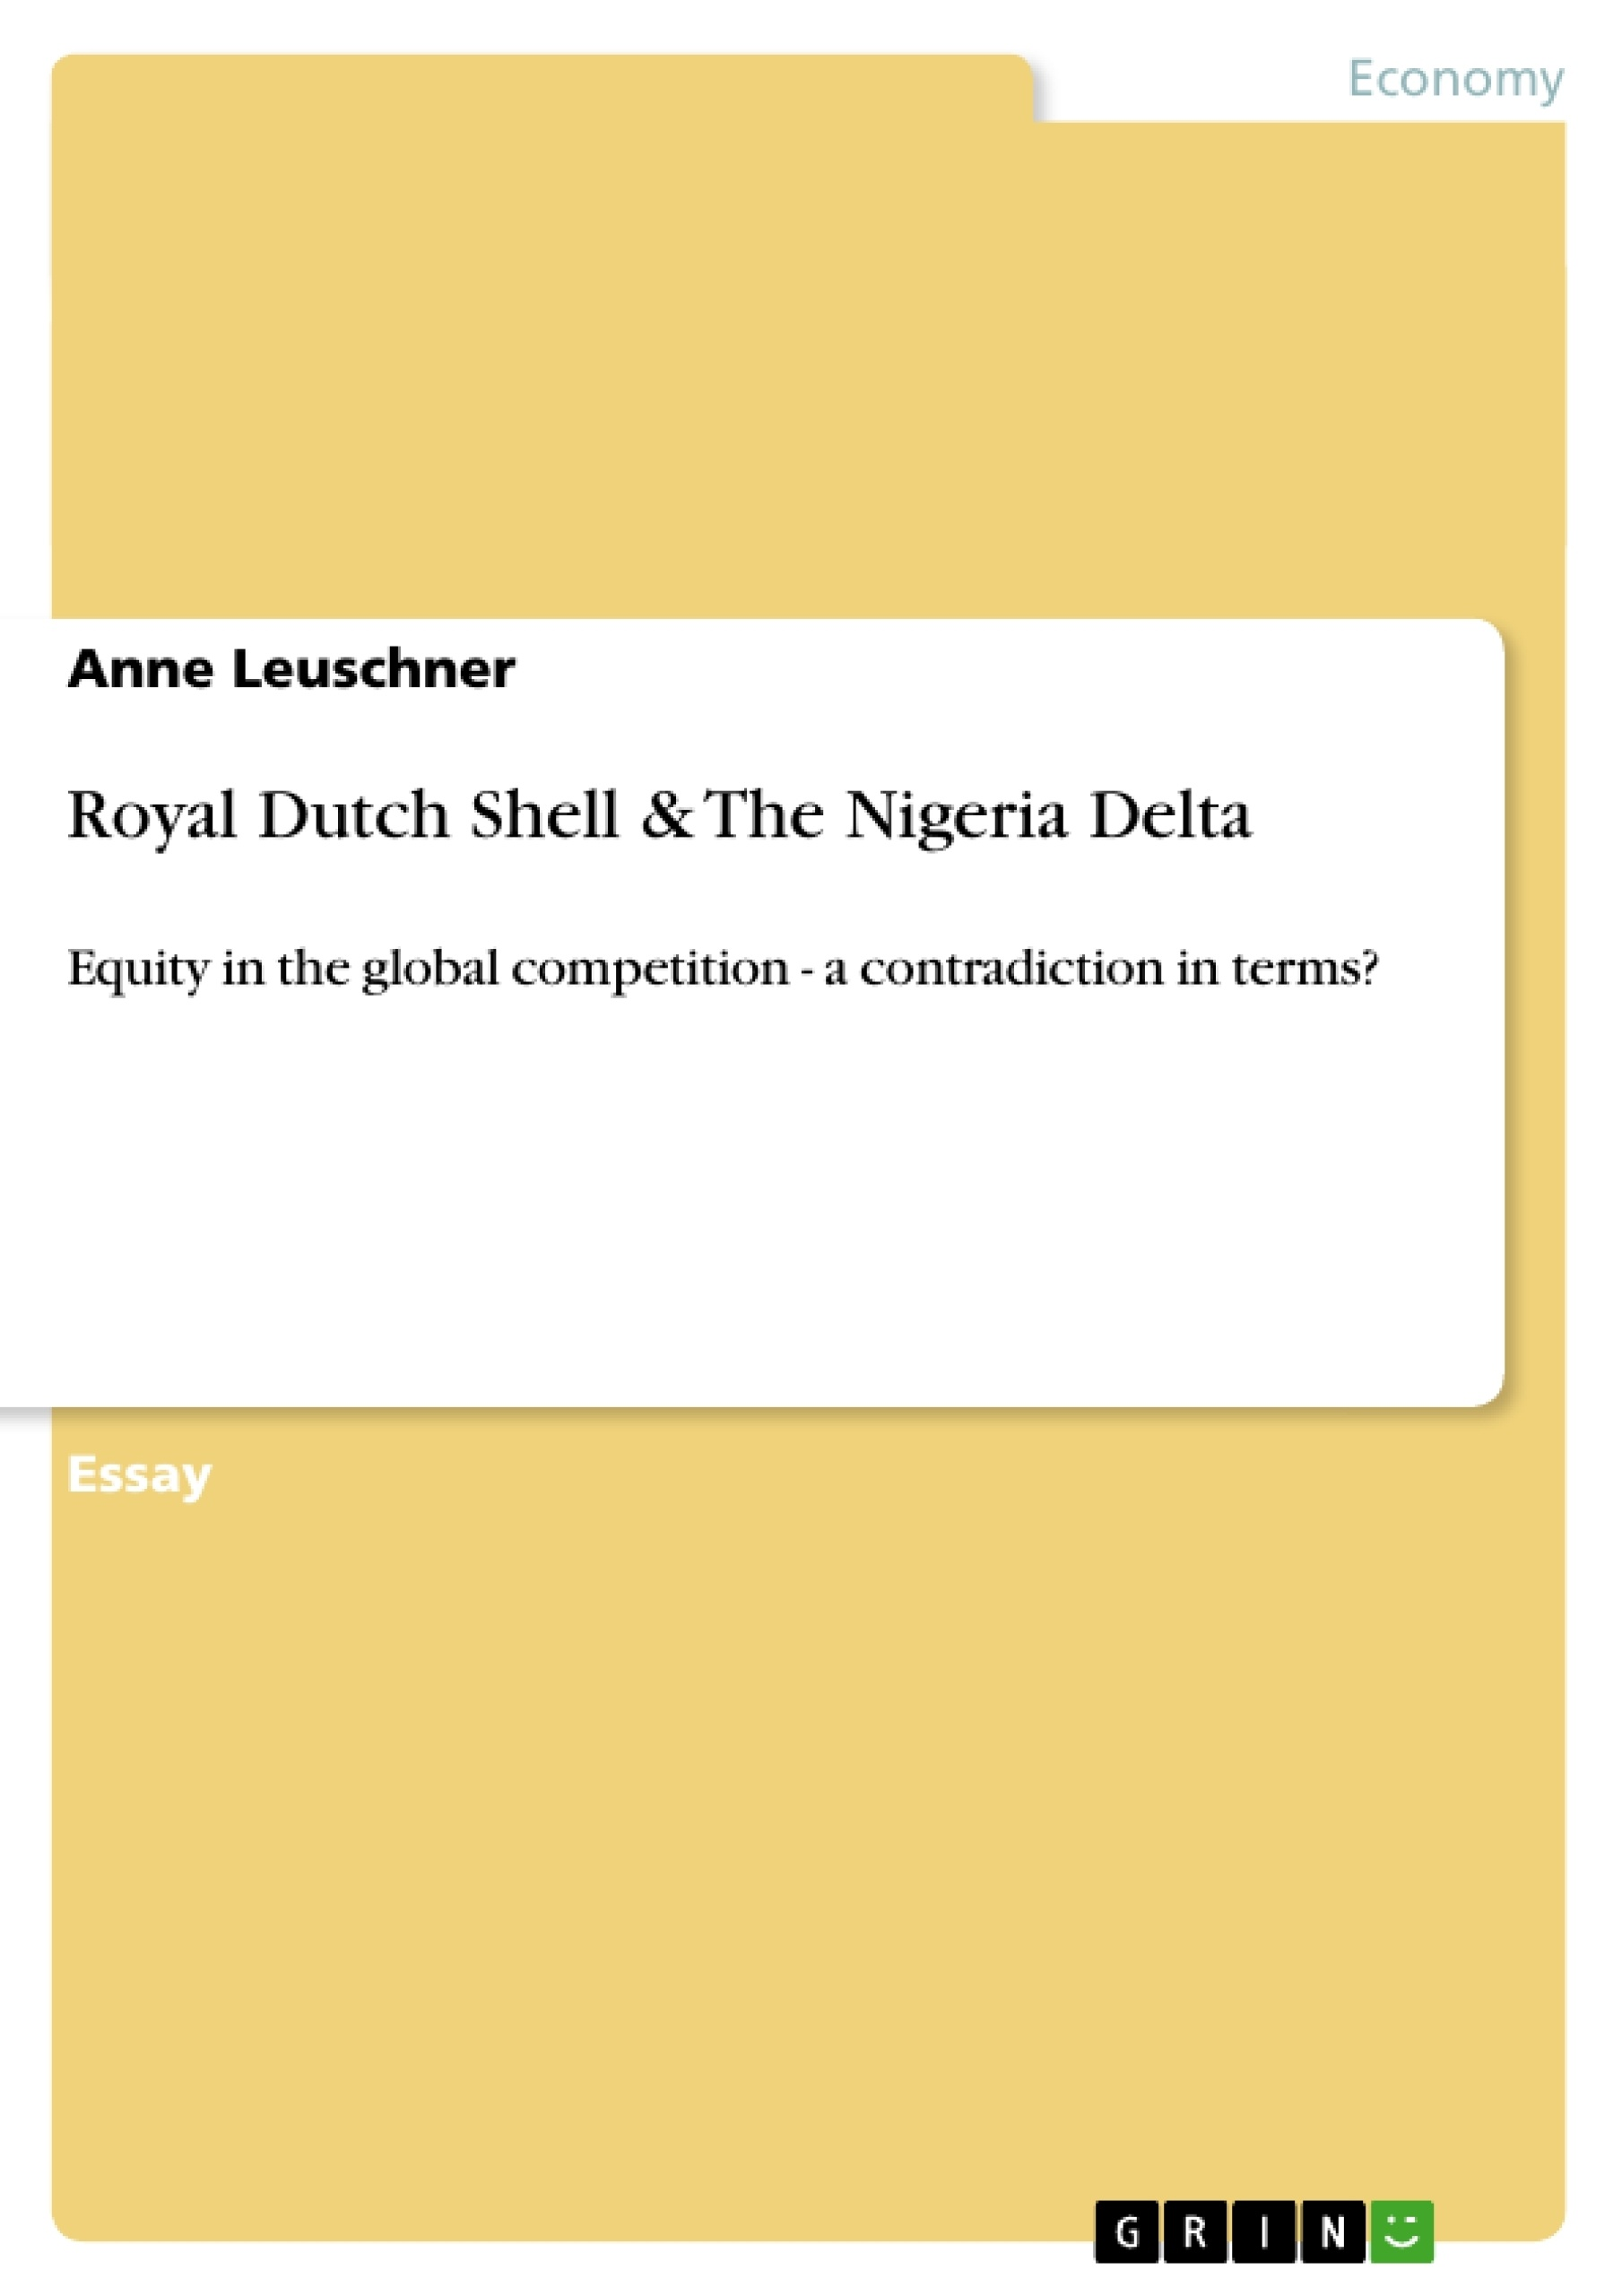 Royal Dutch and Shell Case